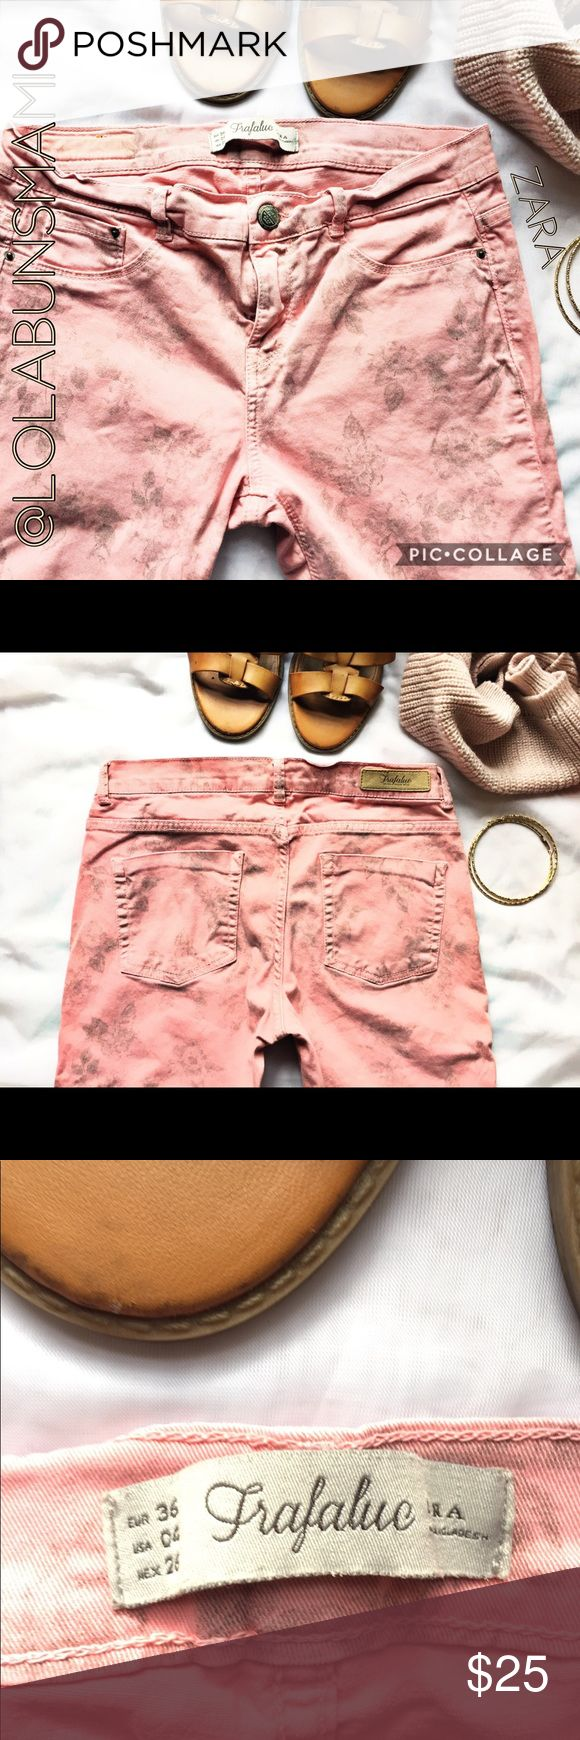 """Zara pink printed Skinny Jeans Love the color. Super cute! Waist is 13.5""""inches. Length is 36 1/2 inches Inseam is 28 1/2""""inches Zara Jeans Skinny"""